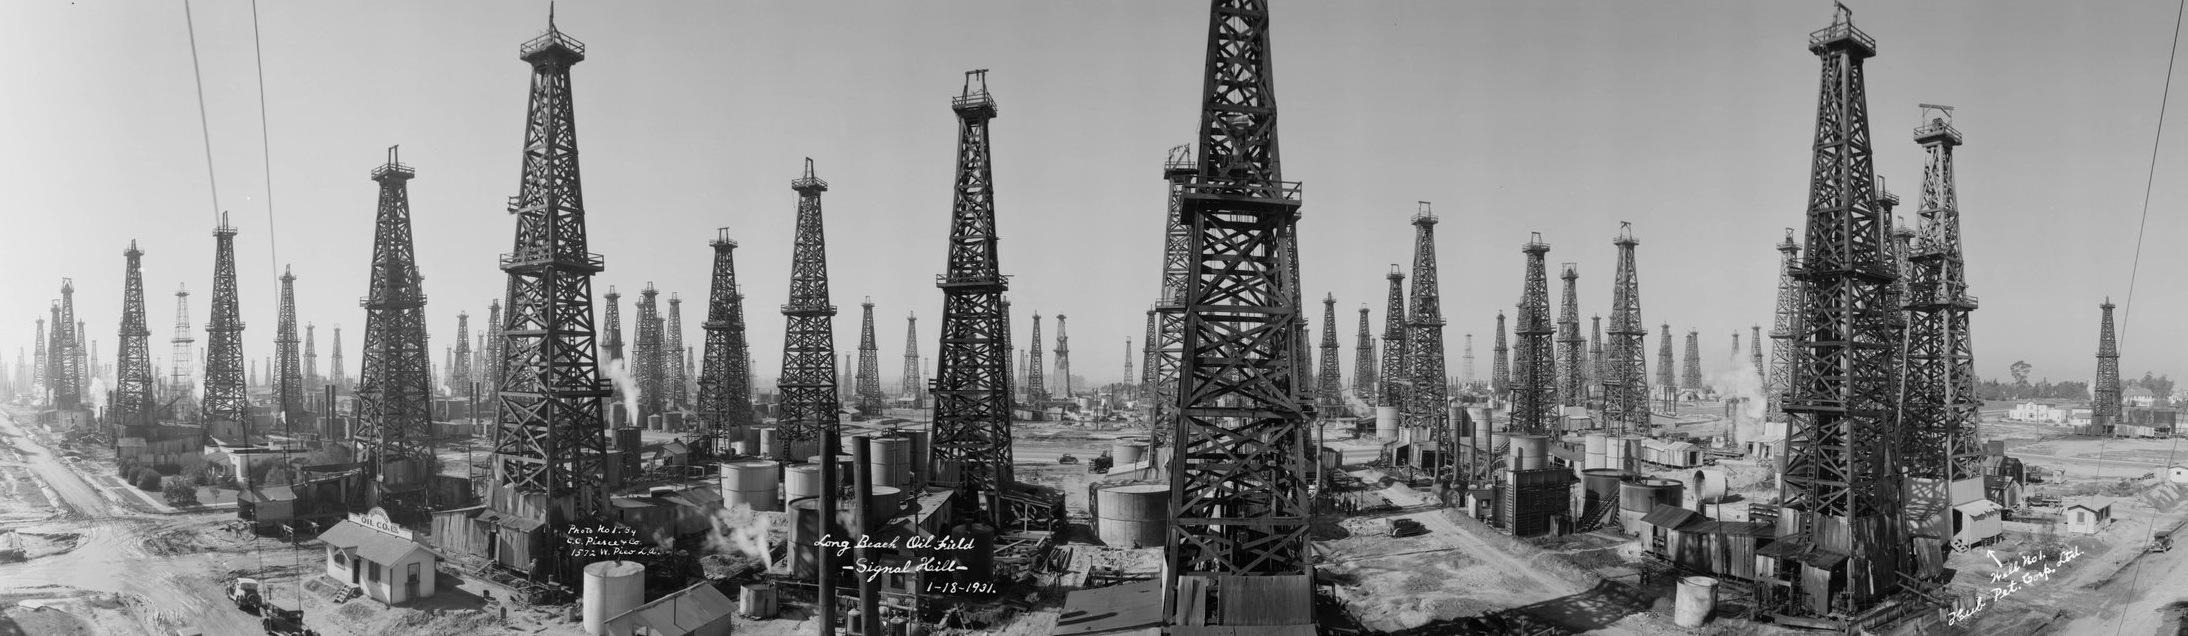 Signal Hill Oil Field, 1931.  Huntington Digital Library .